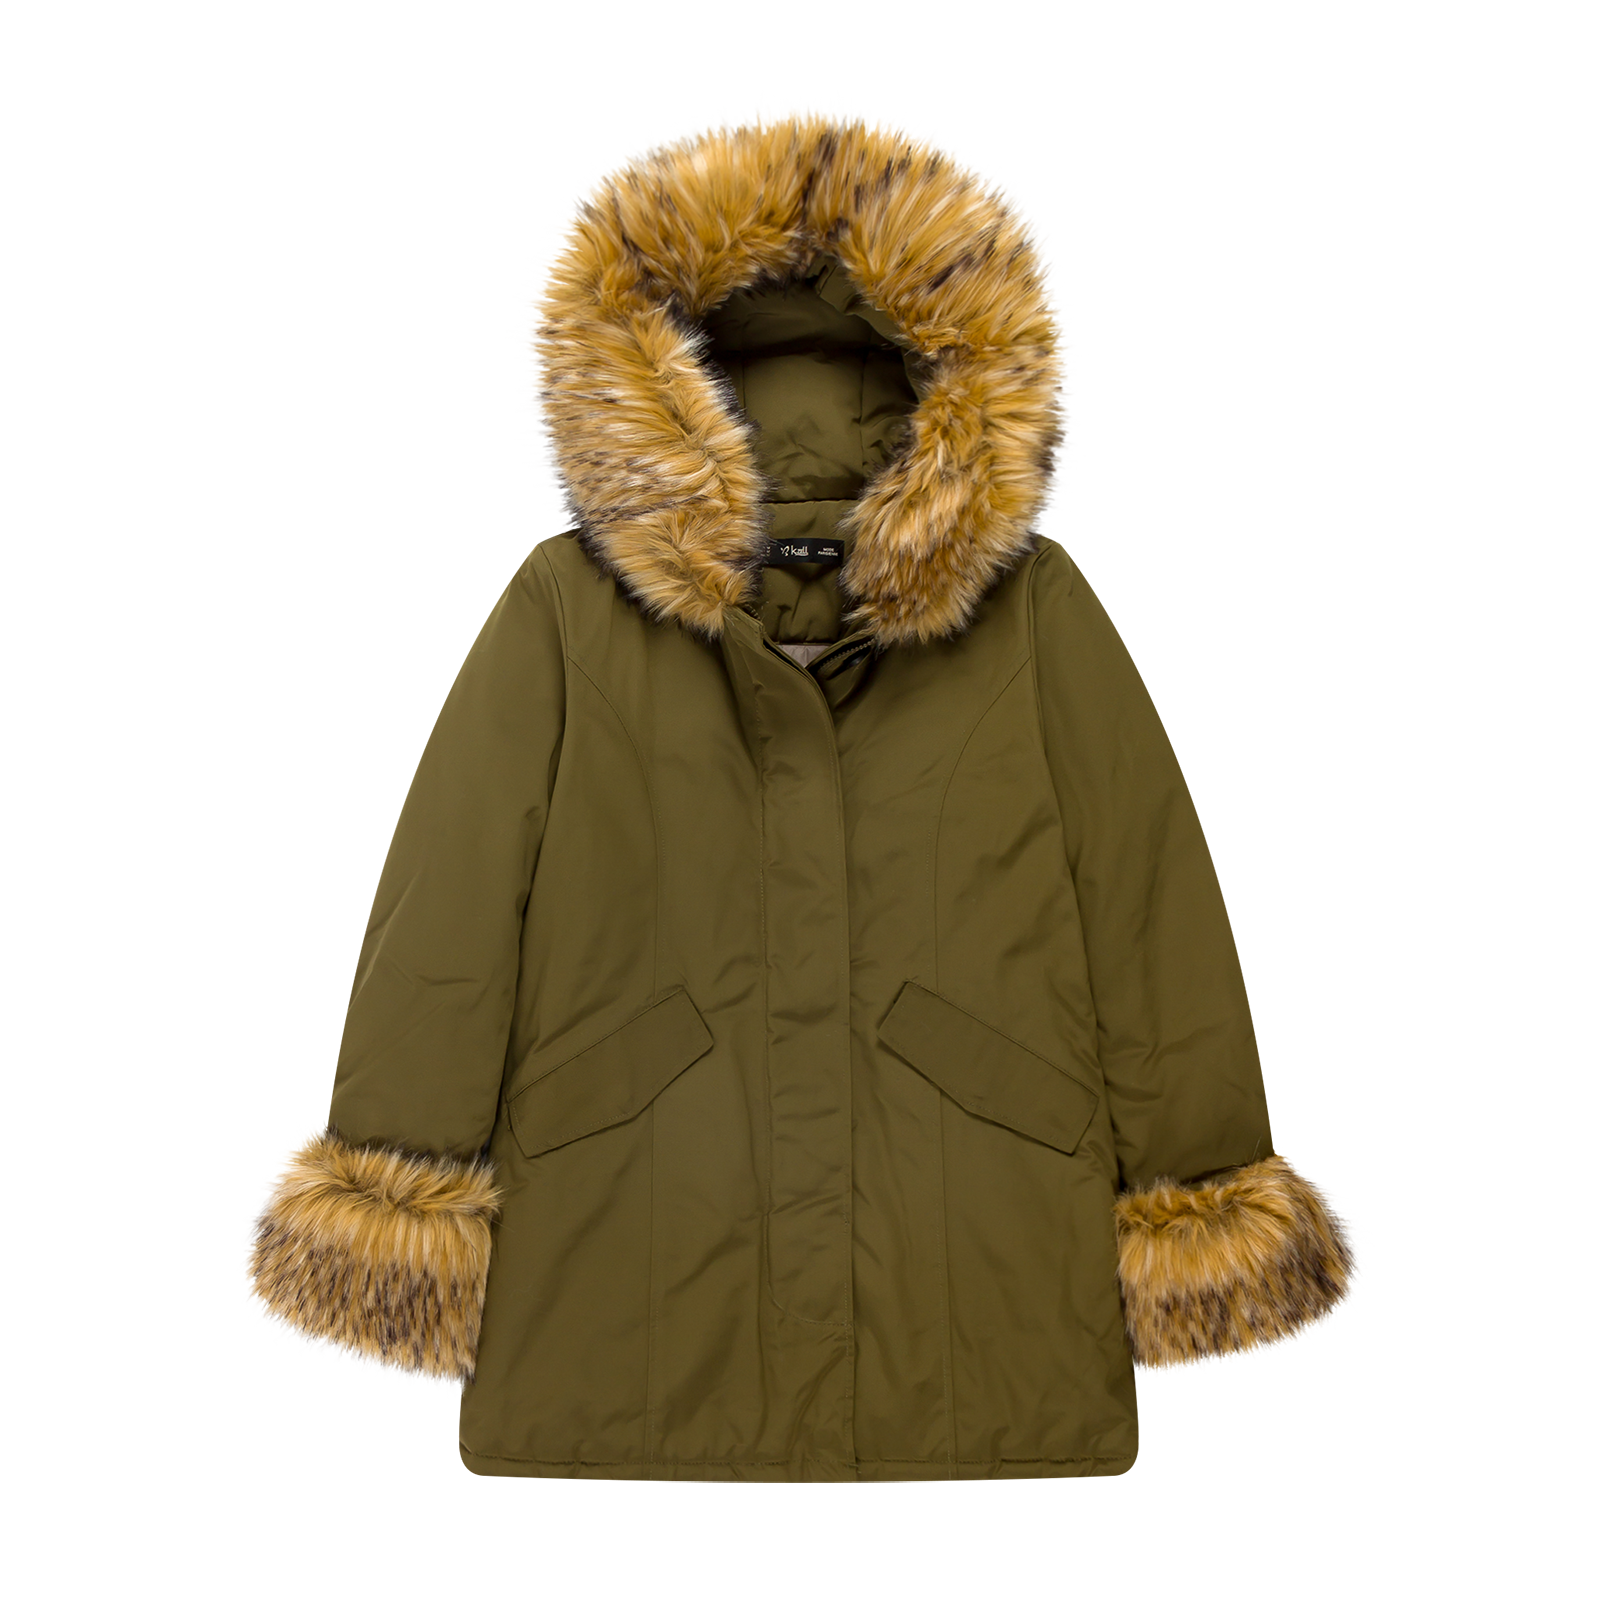 Winter coat product image